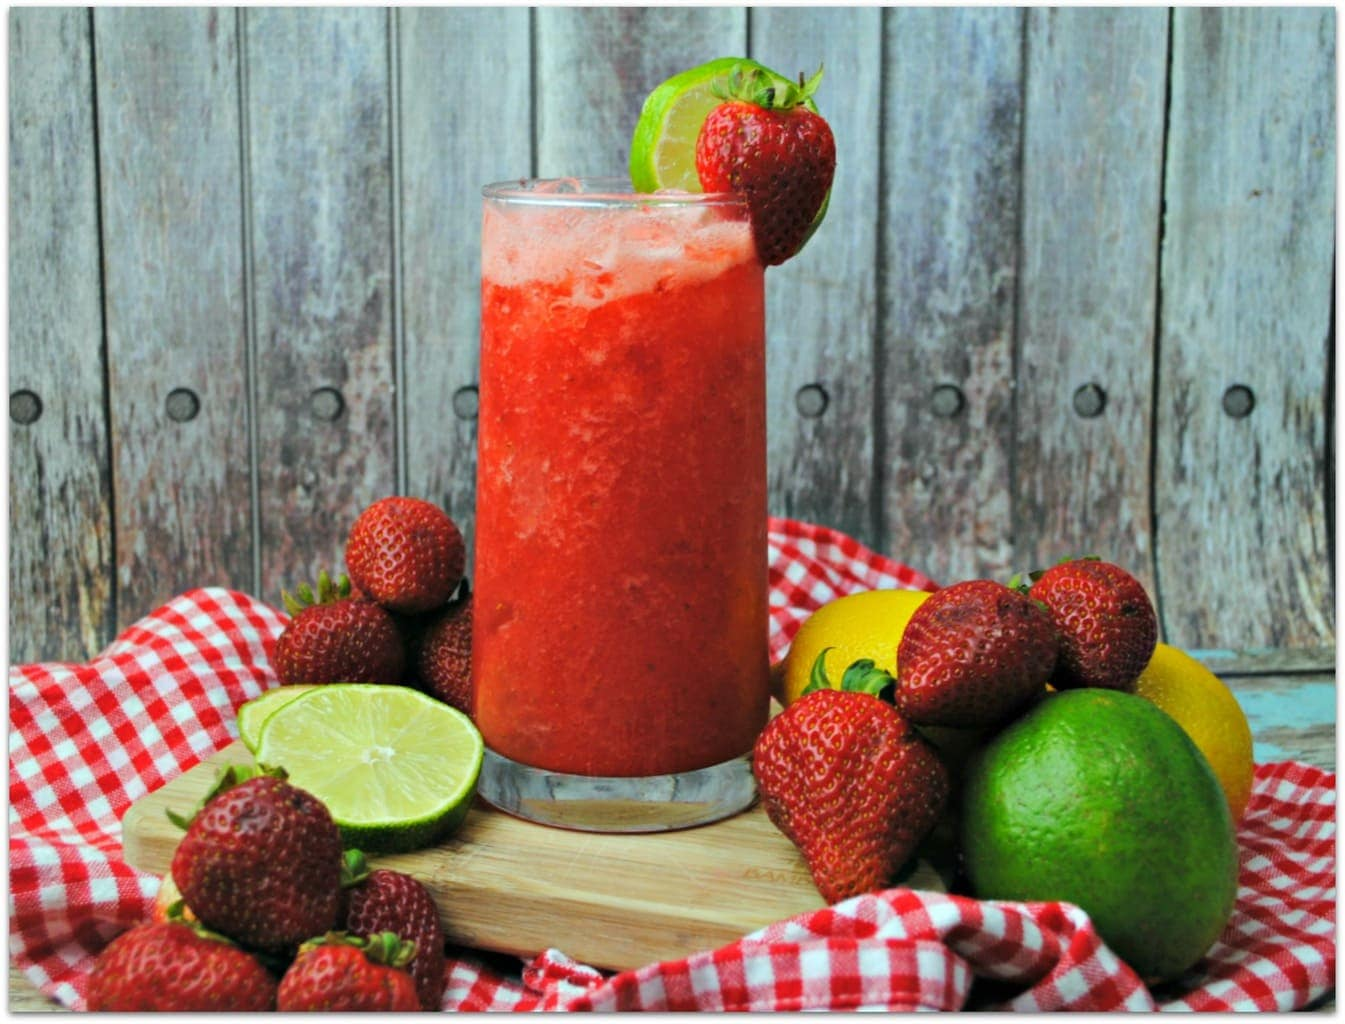 This Strawberry Agua Fresca is the perfect drink to cool you off on a hot day. It may still be pretty cold where you are but here in Florida, it's strawberry season!